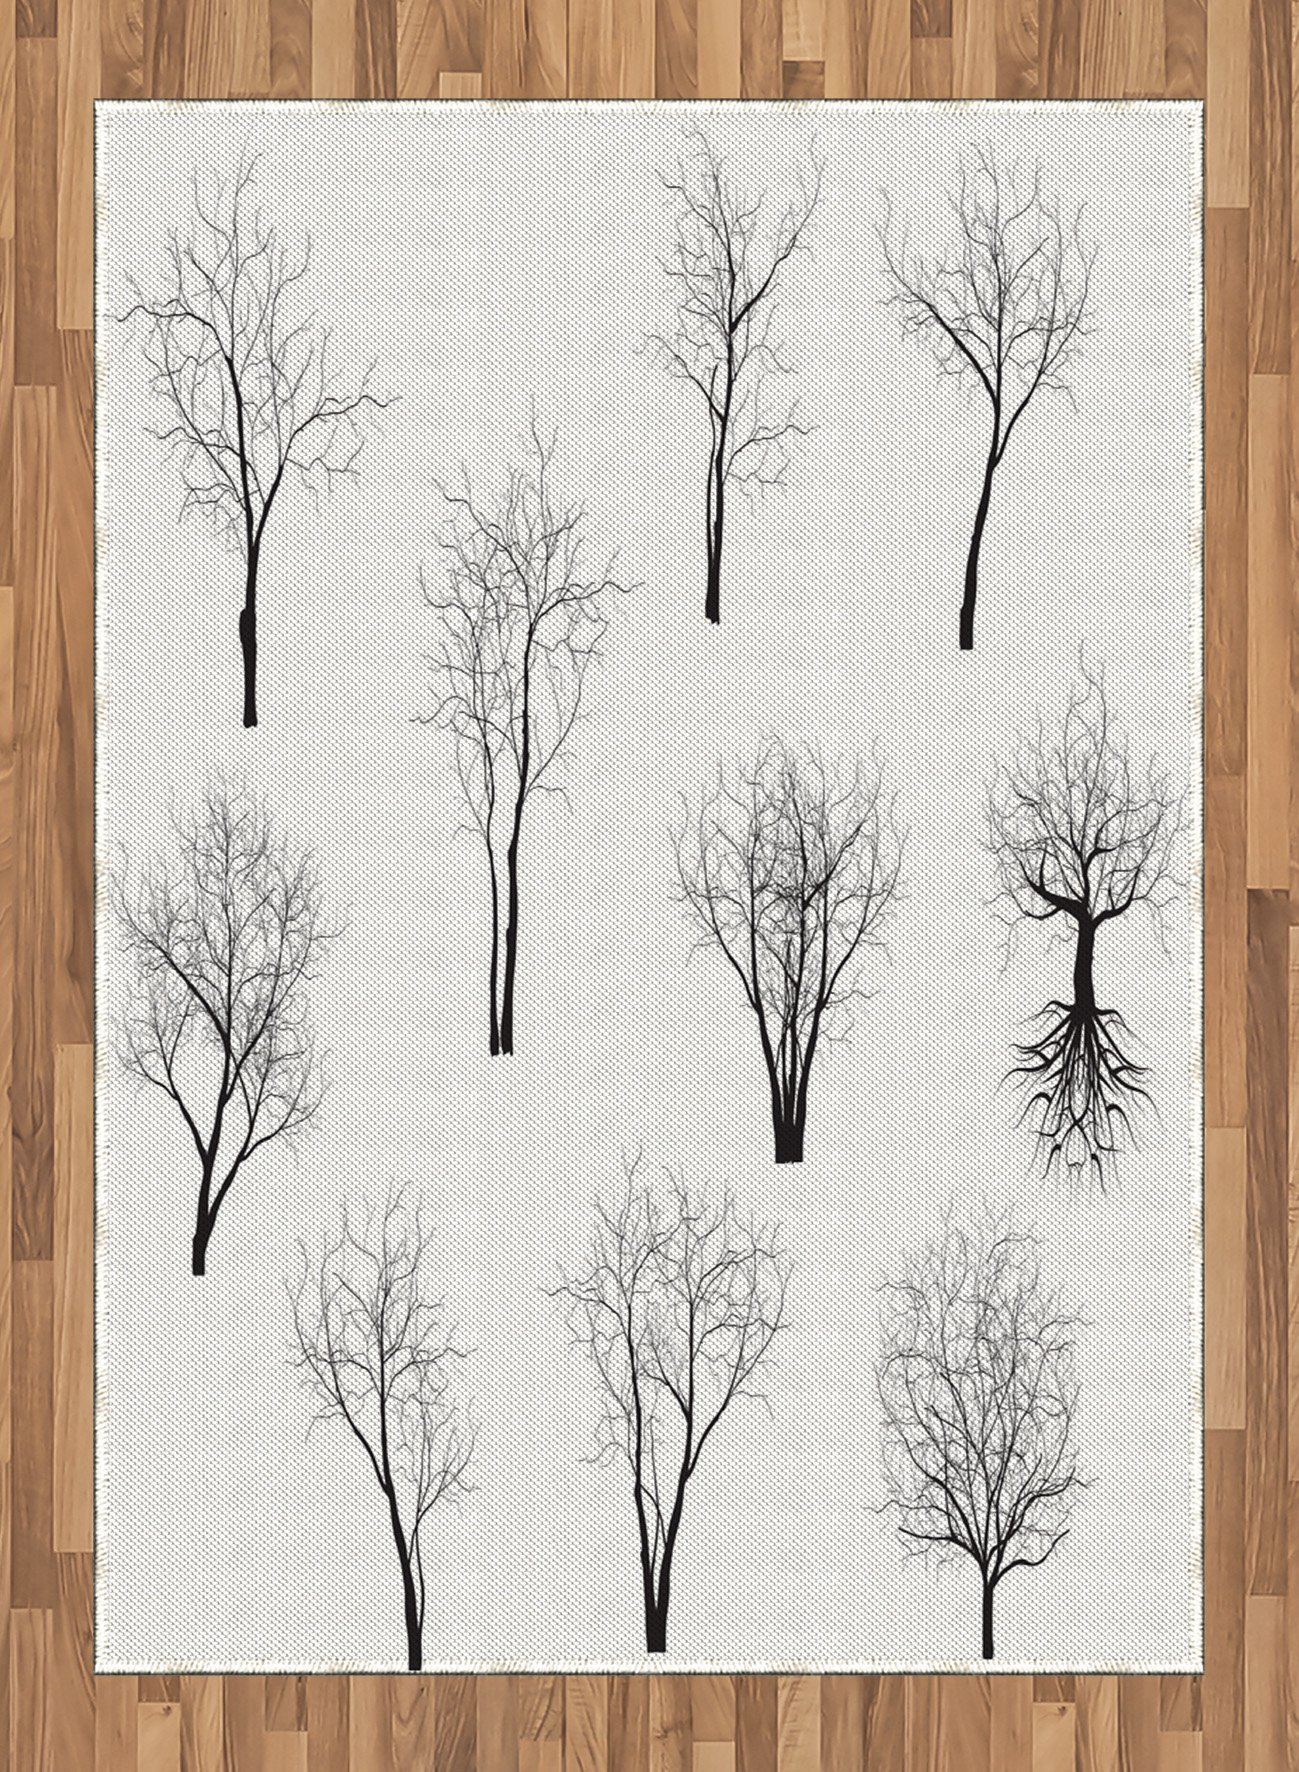 Forest Area Rug by Ambesonne, Spooky Horror Movie Themed Branches in the Forest Trees Nature Artwork Print, Flat Woven Accent Rug for Living Room Bedroom Dining Room, 5.2 x 7.5 FT, Black and White